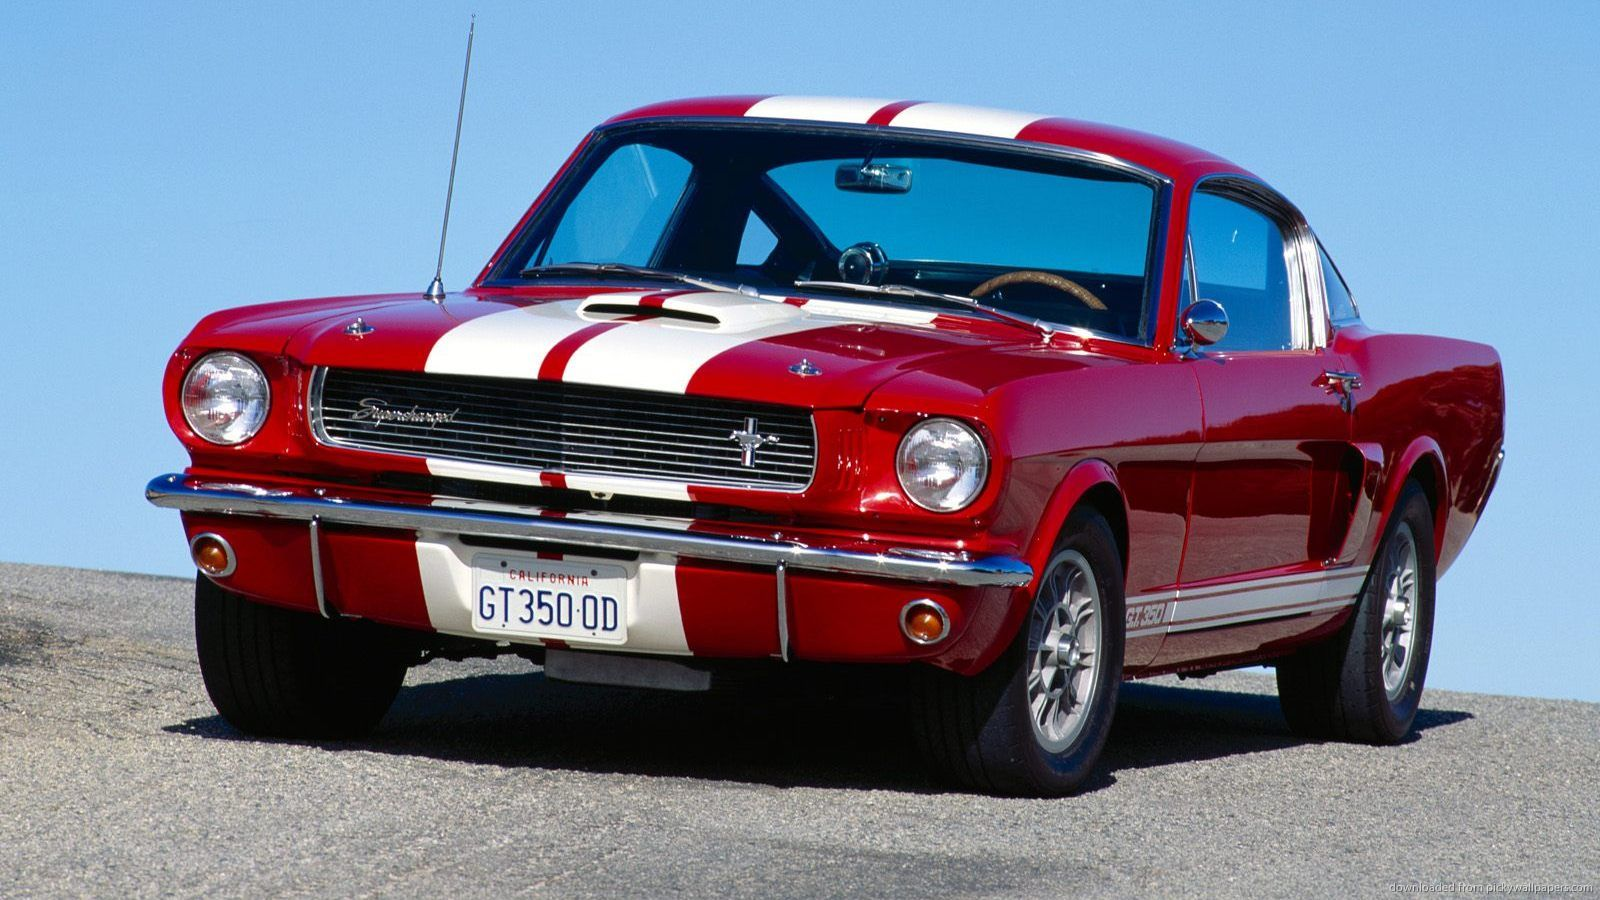 Old Ford Mustang Shelby Wallpaper Mustang Cars Ford Mustang Shelby Gt Mustang Fastback